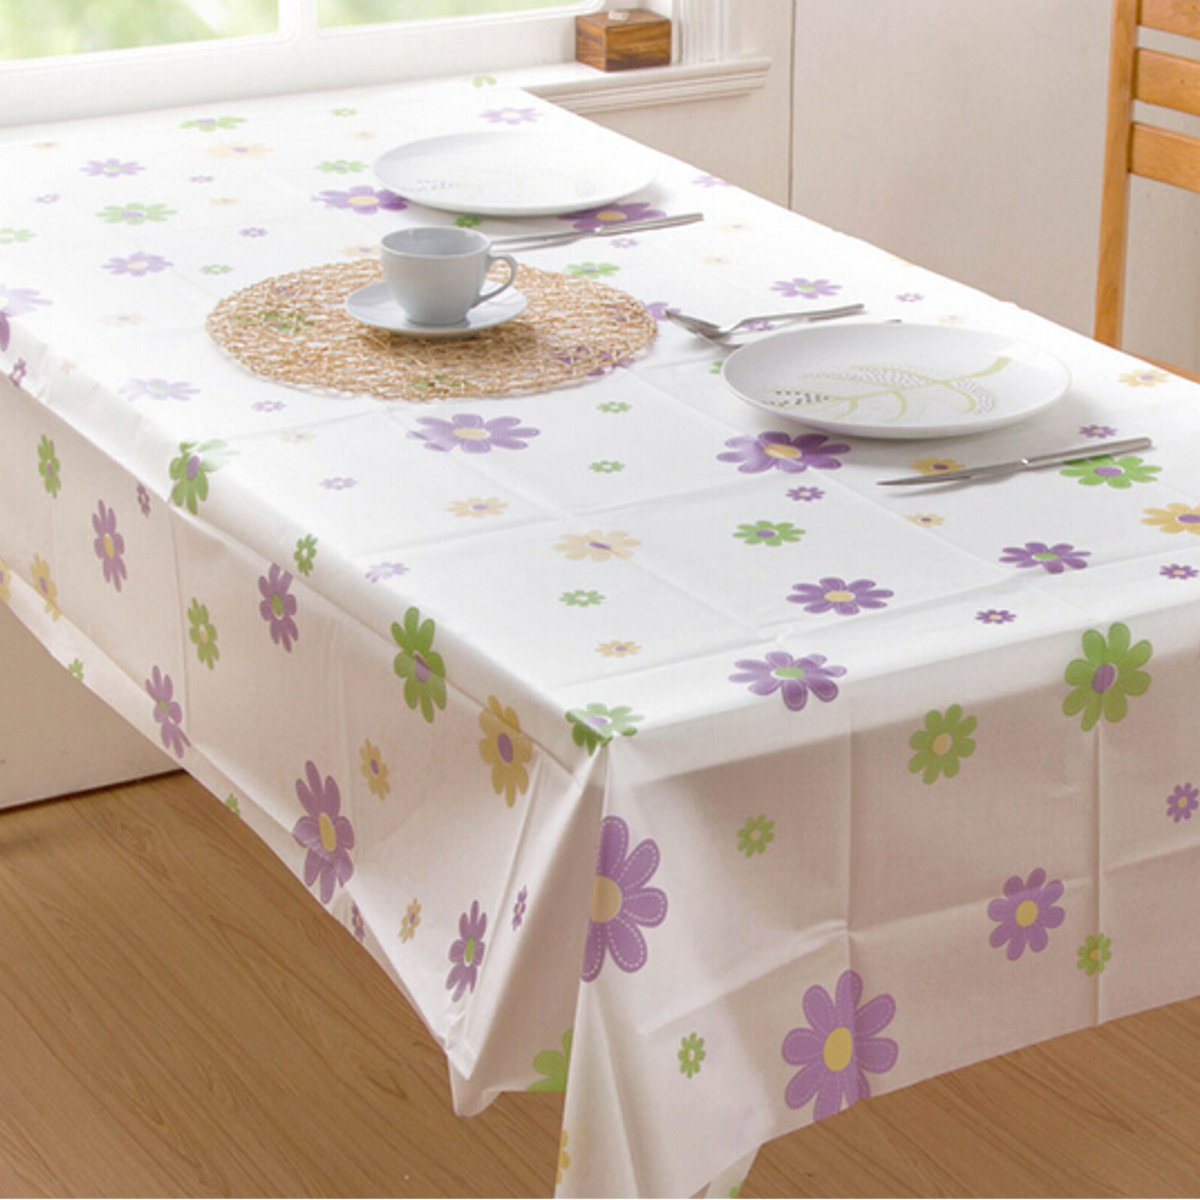 wipe clean pvc vinyl tablecloth dining kitchen table cover protector